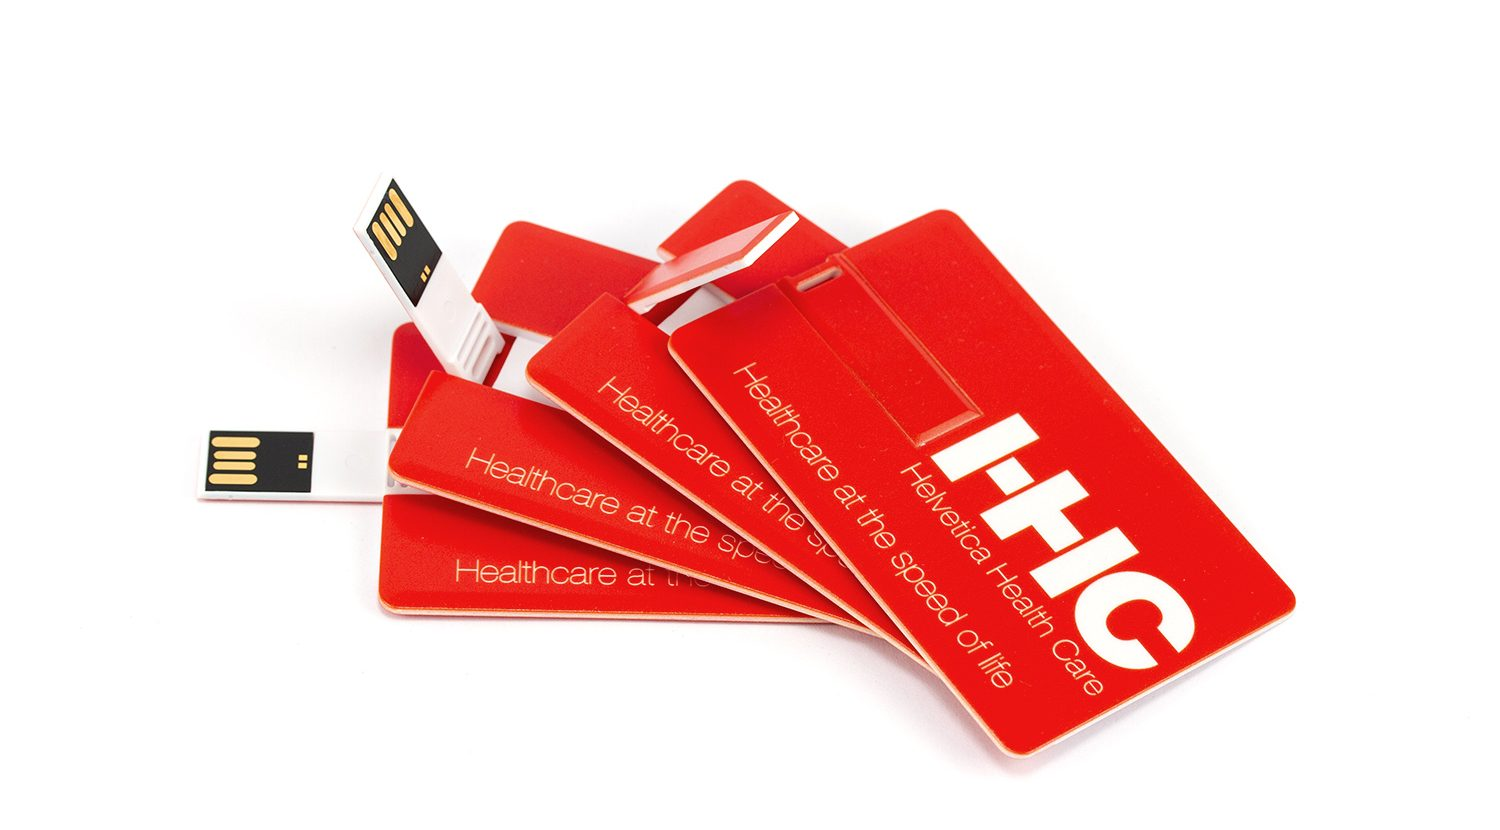 Get our HHC USB Flash drive for free!